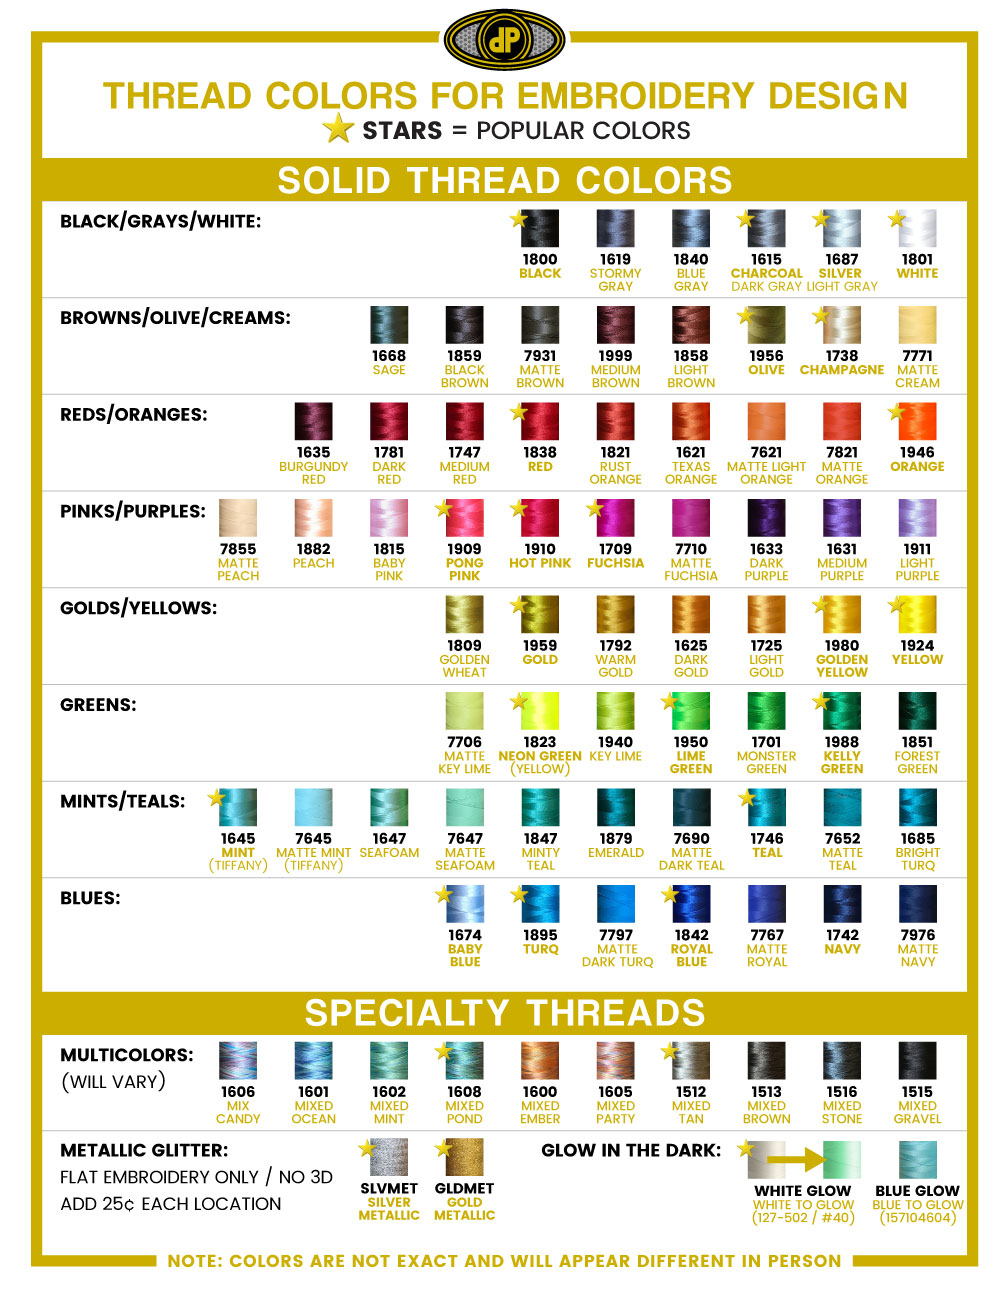 Embroidery Thread Colors 2018